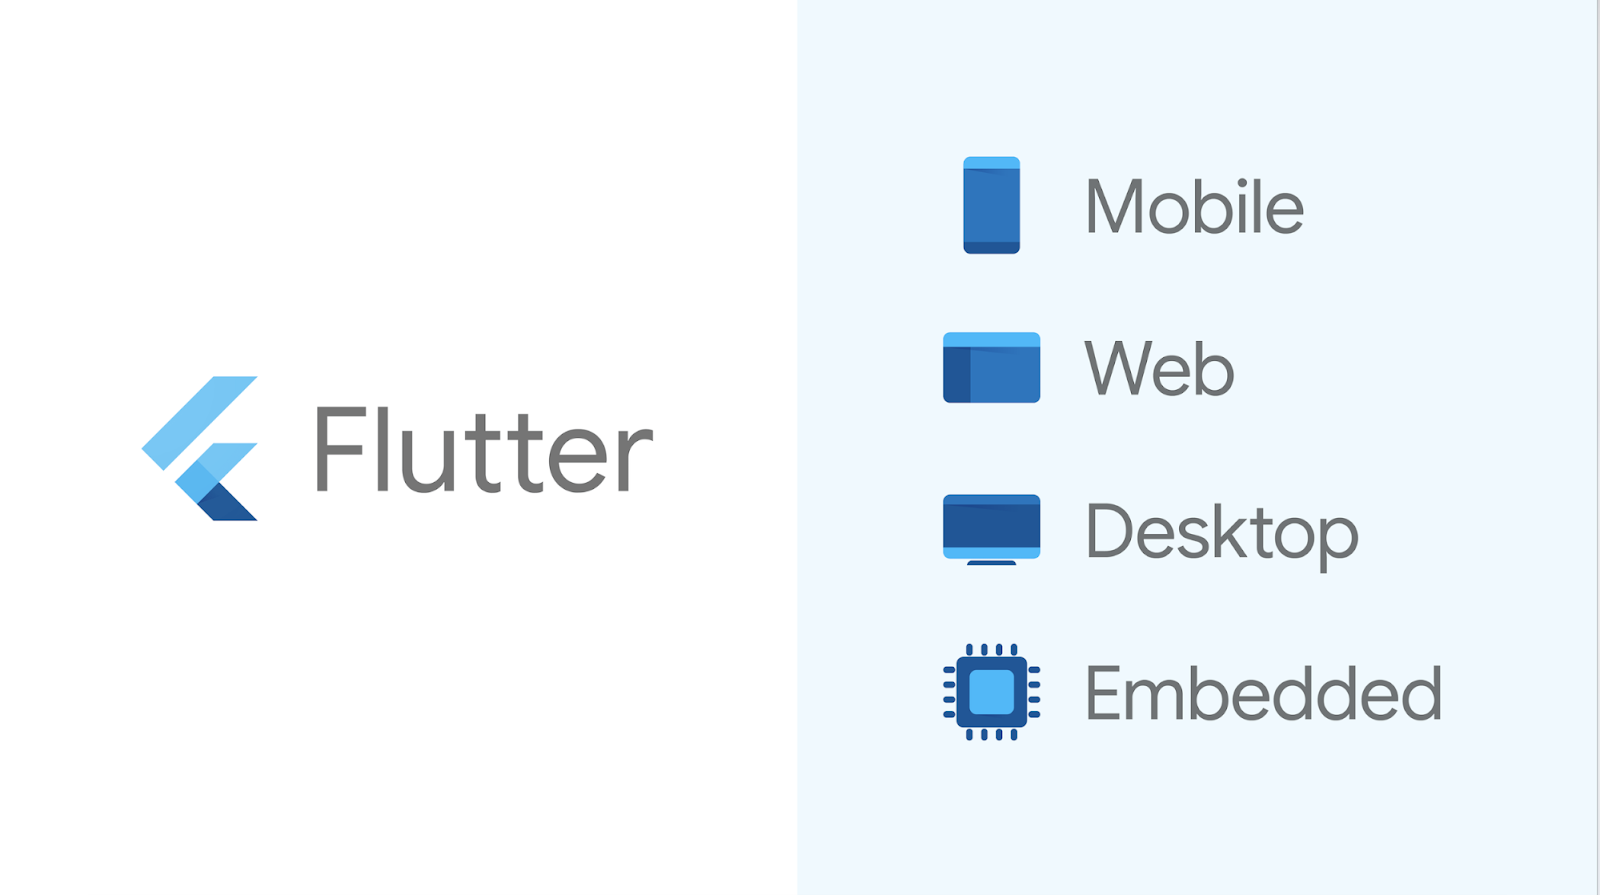 Google expands its Flutter UI framework to the rest of the web